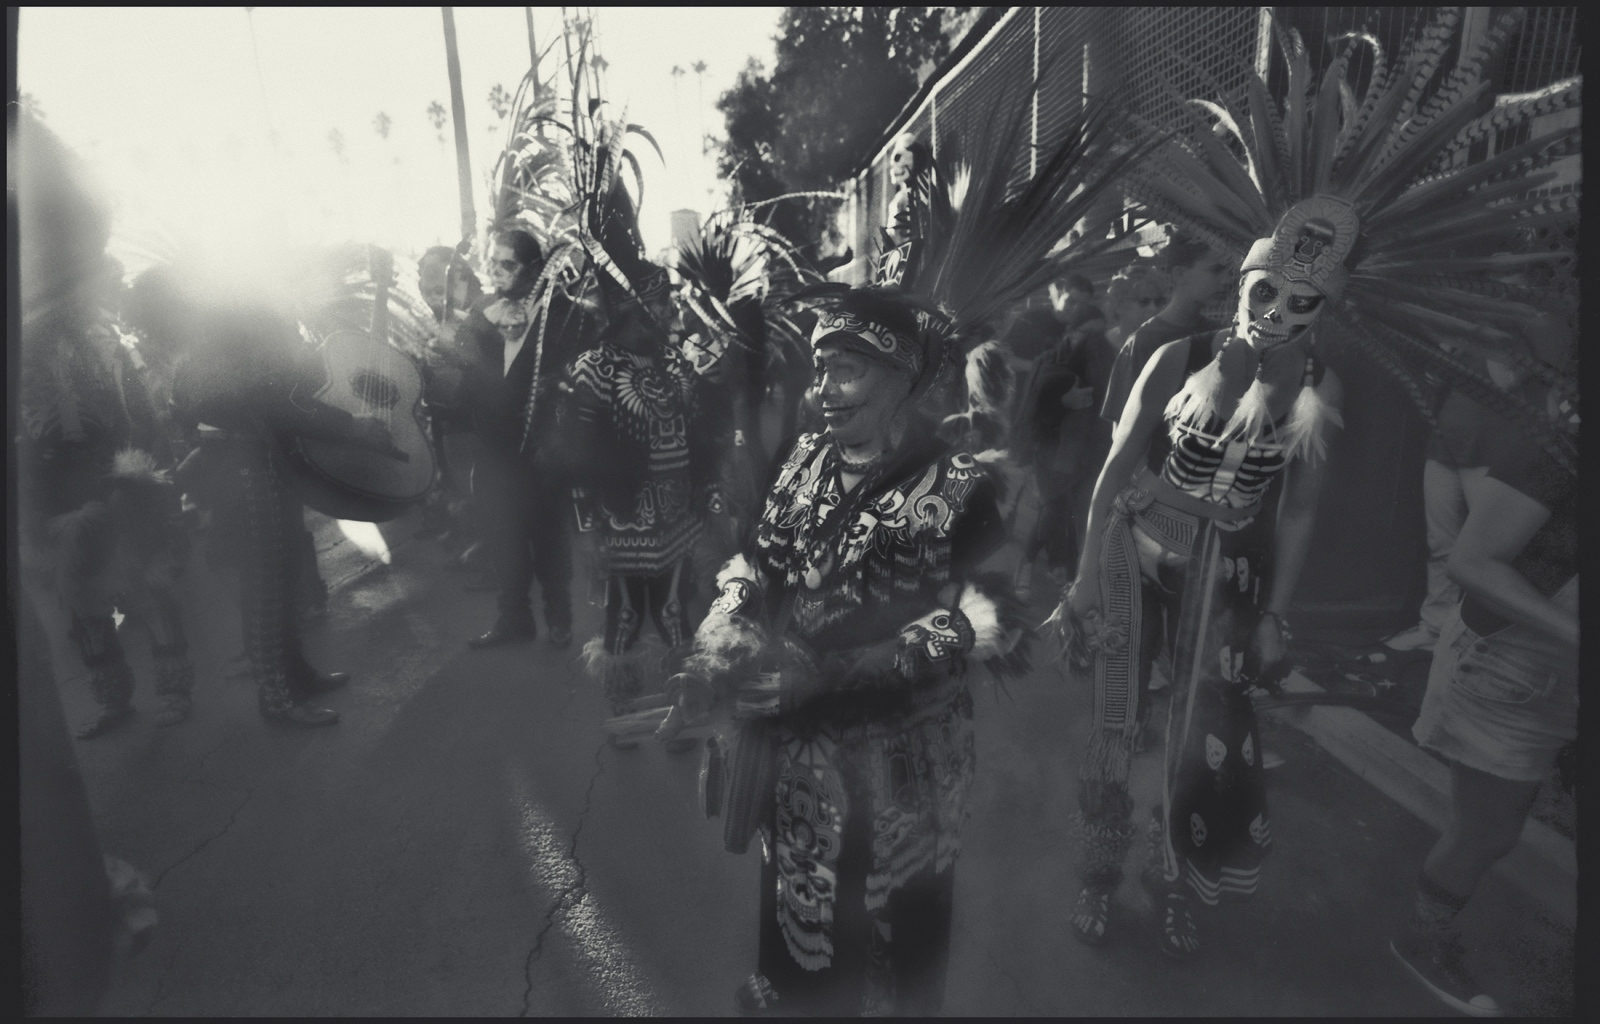 In Mayan ceremonial attire. Indigenous celebrants during Day of the Dead in Hollywood, Ca .2017.